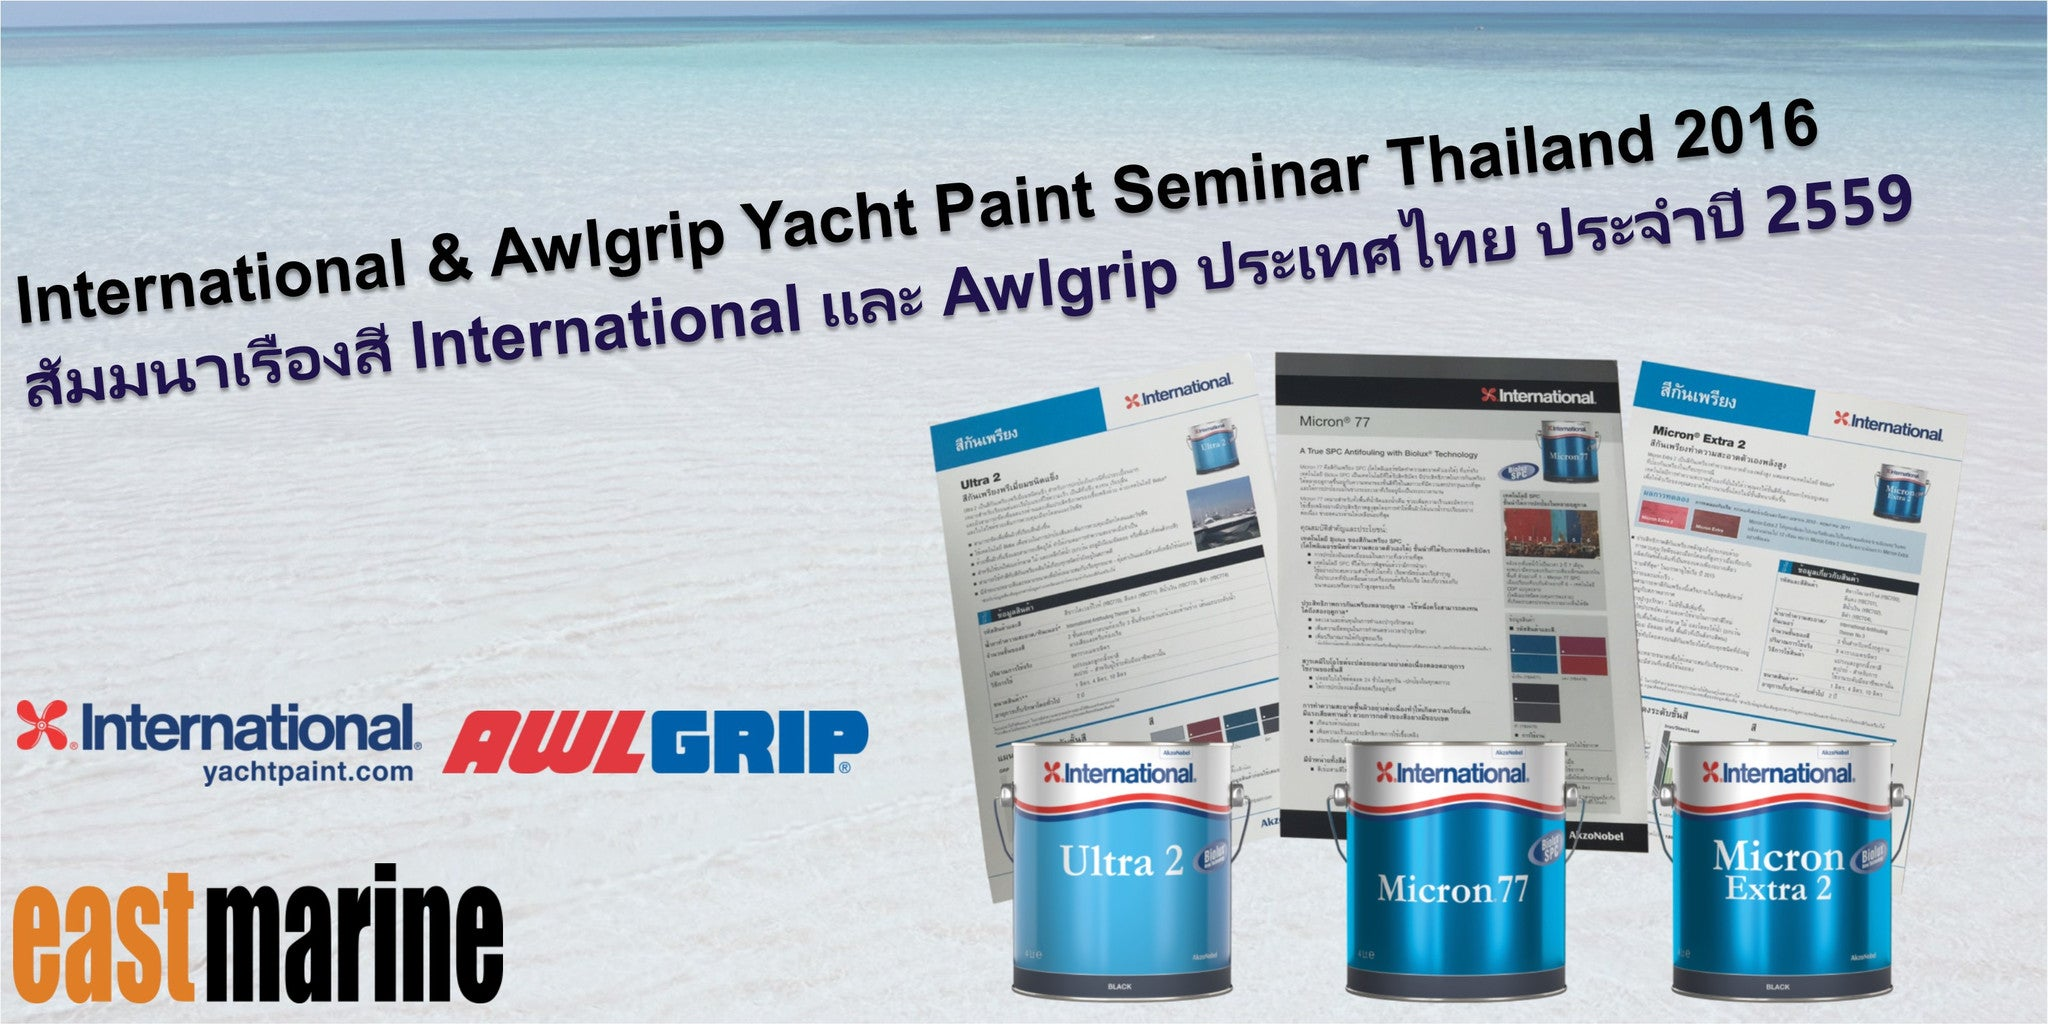 International & Awlgrip Yacht Paint Seminar Thailand 2016